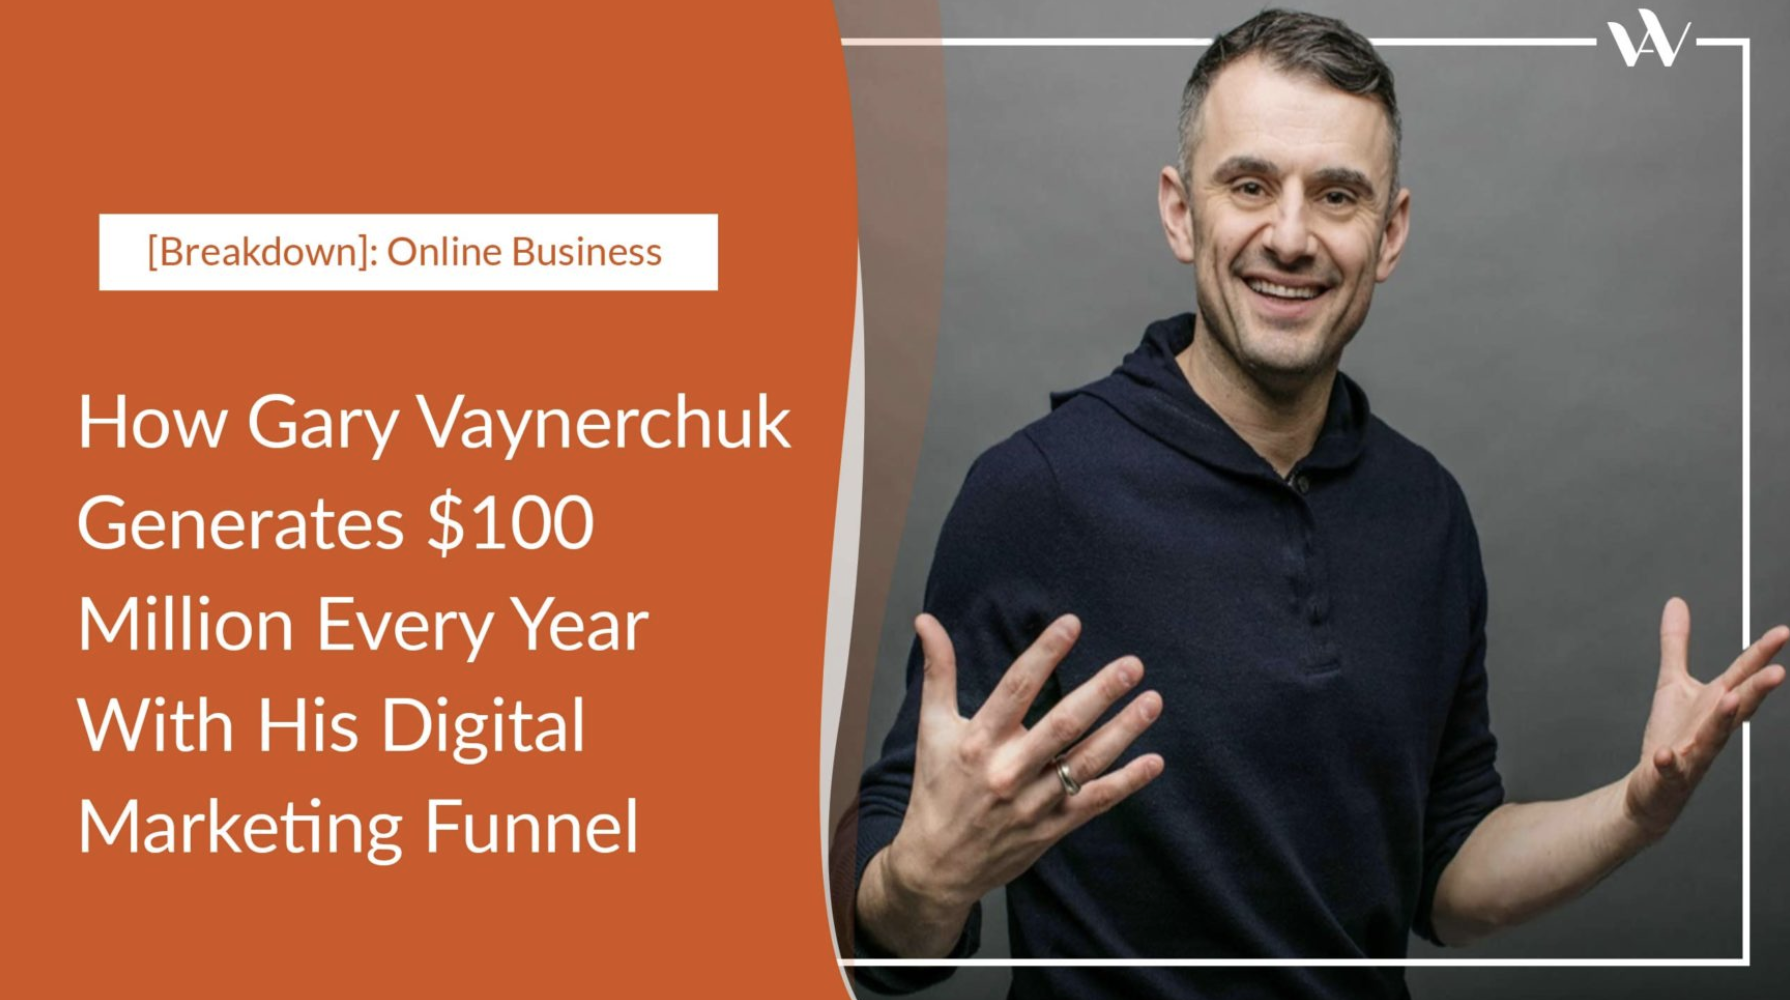 CONTENT MARKETING (Got it over 3000 views in 1 week):  How Gary Vaynerchuk Generates $100 Million Every Year With His Digital Marketing Funnel